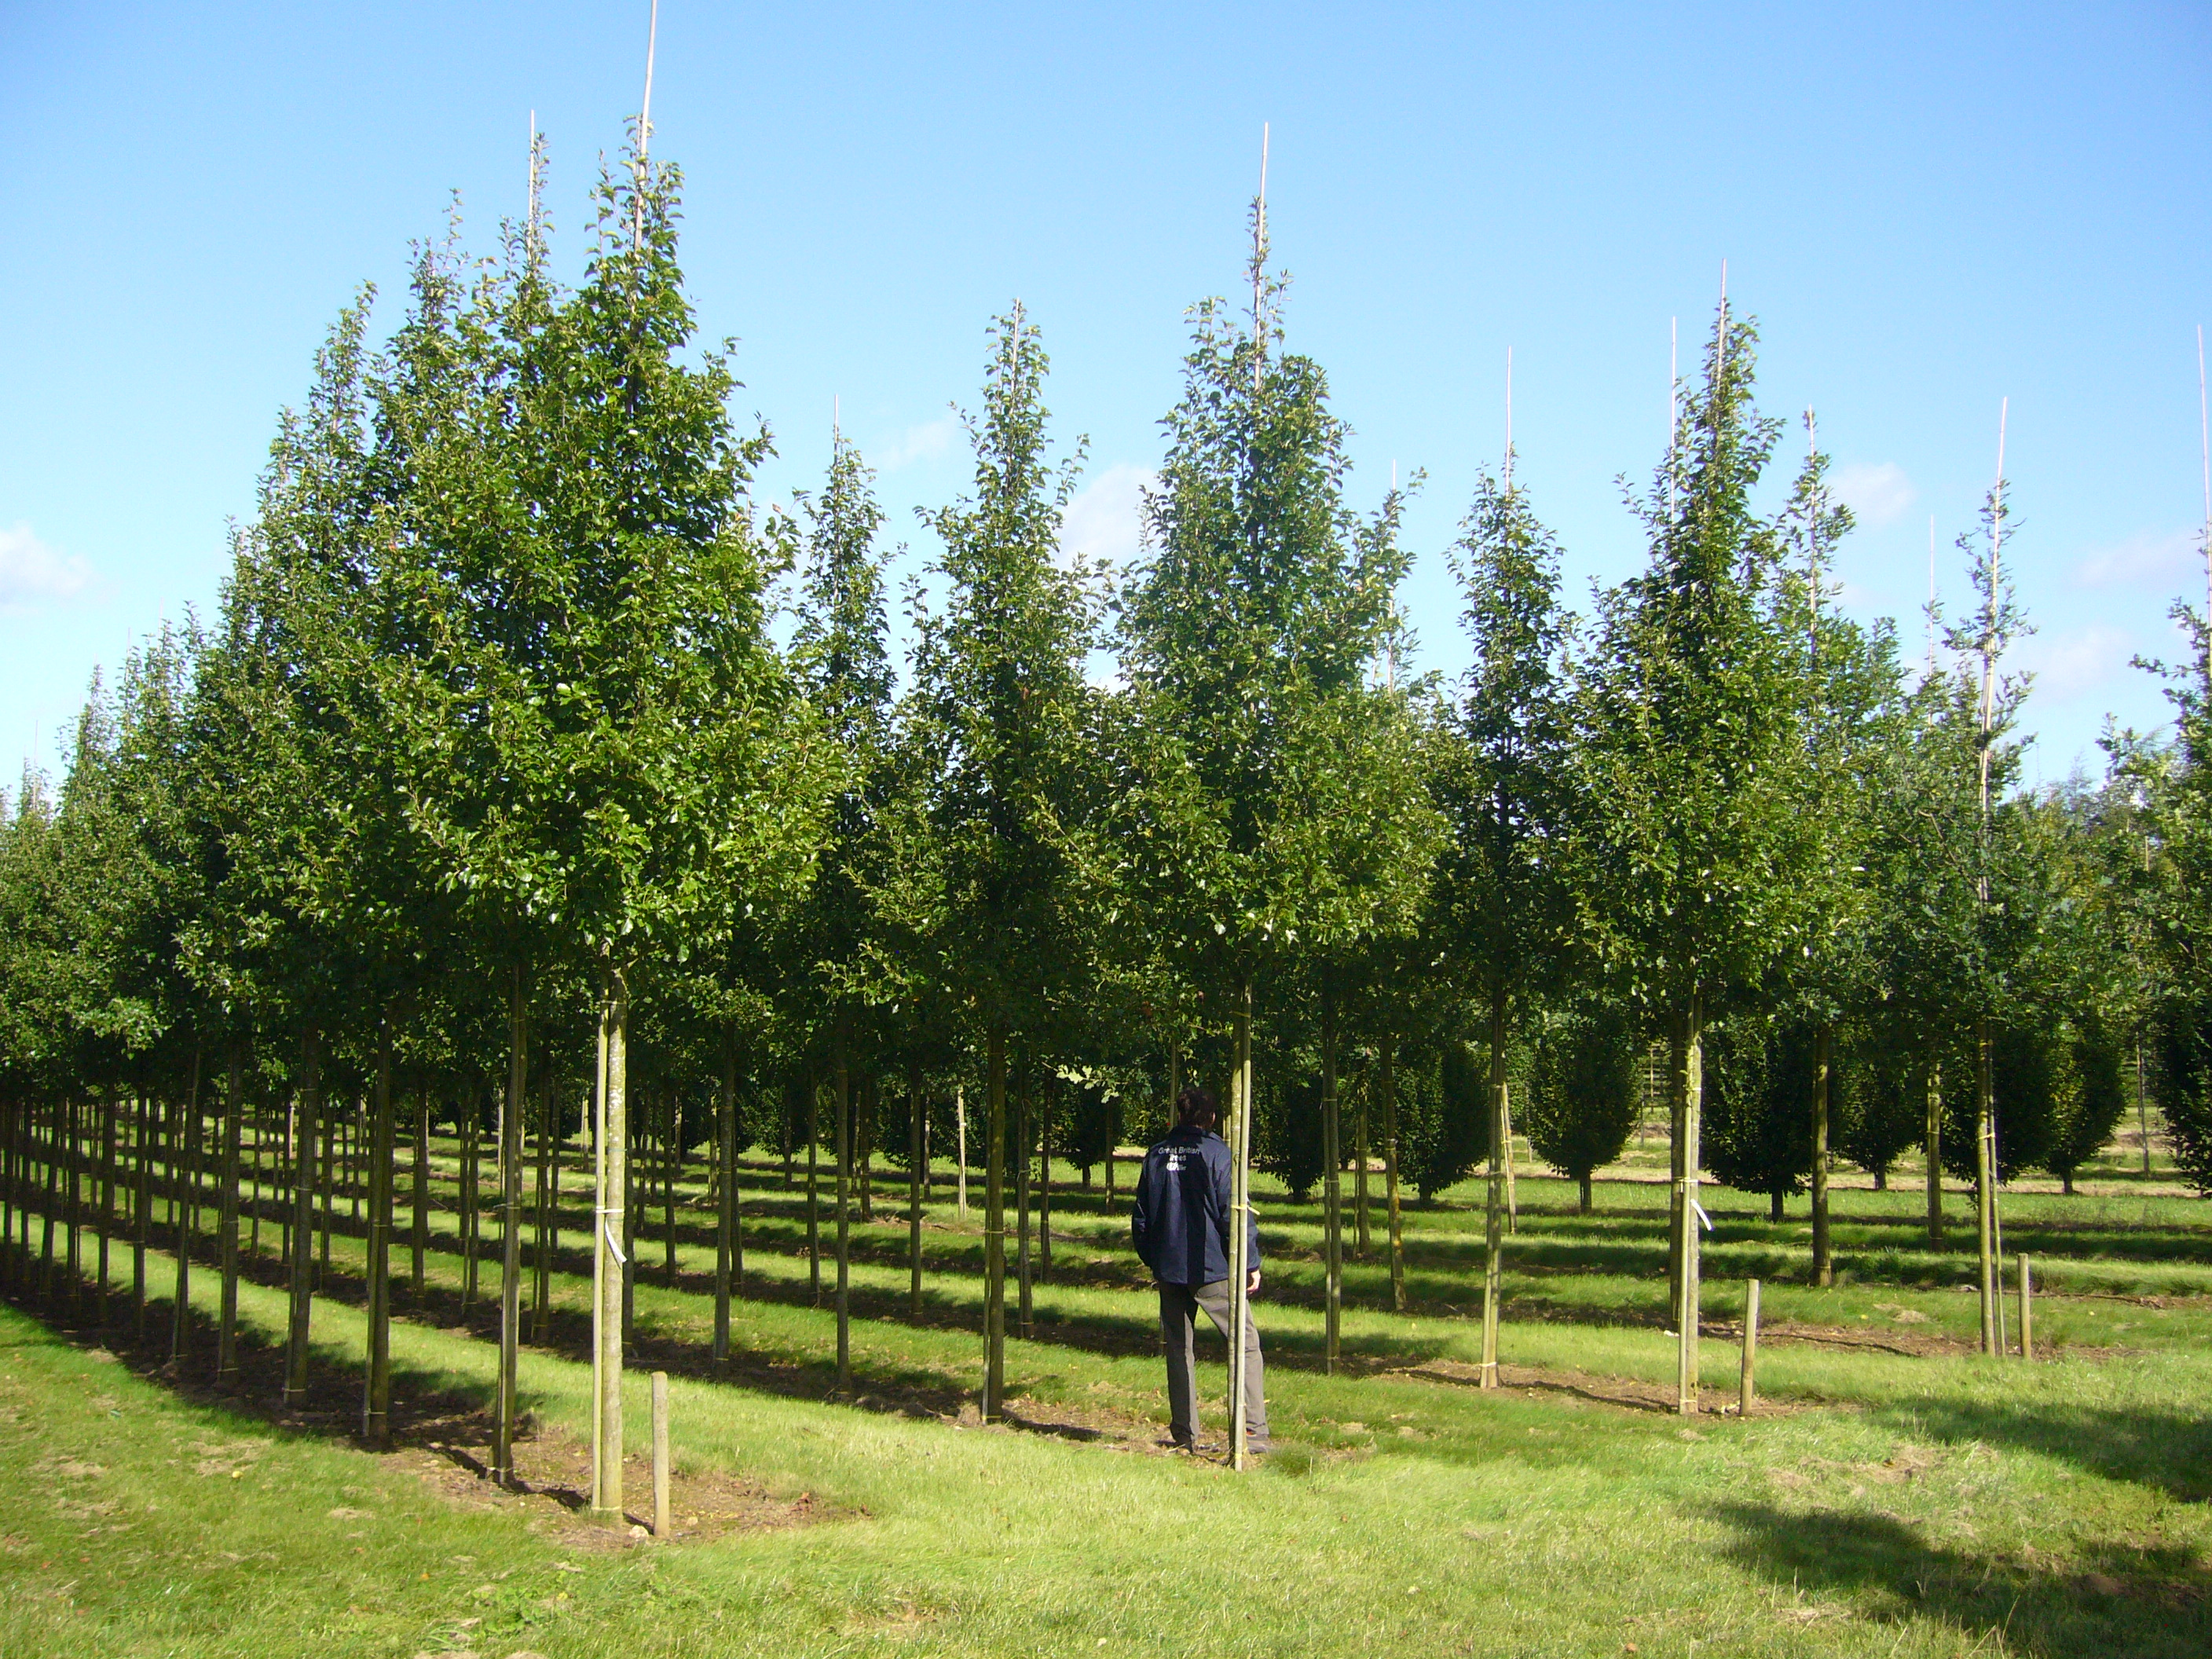 hillier manual of trees and shrubs